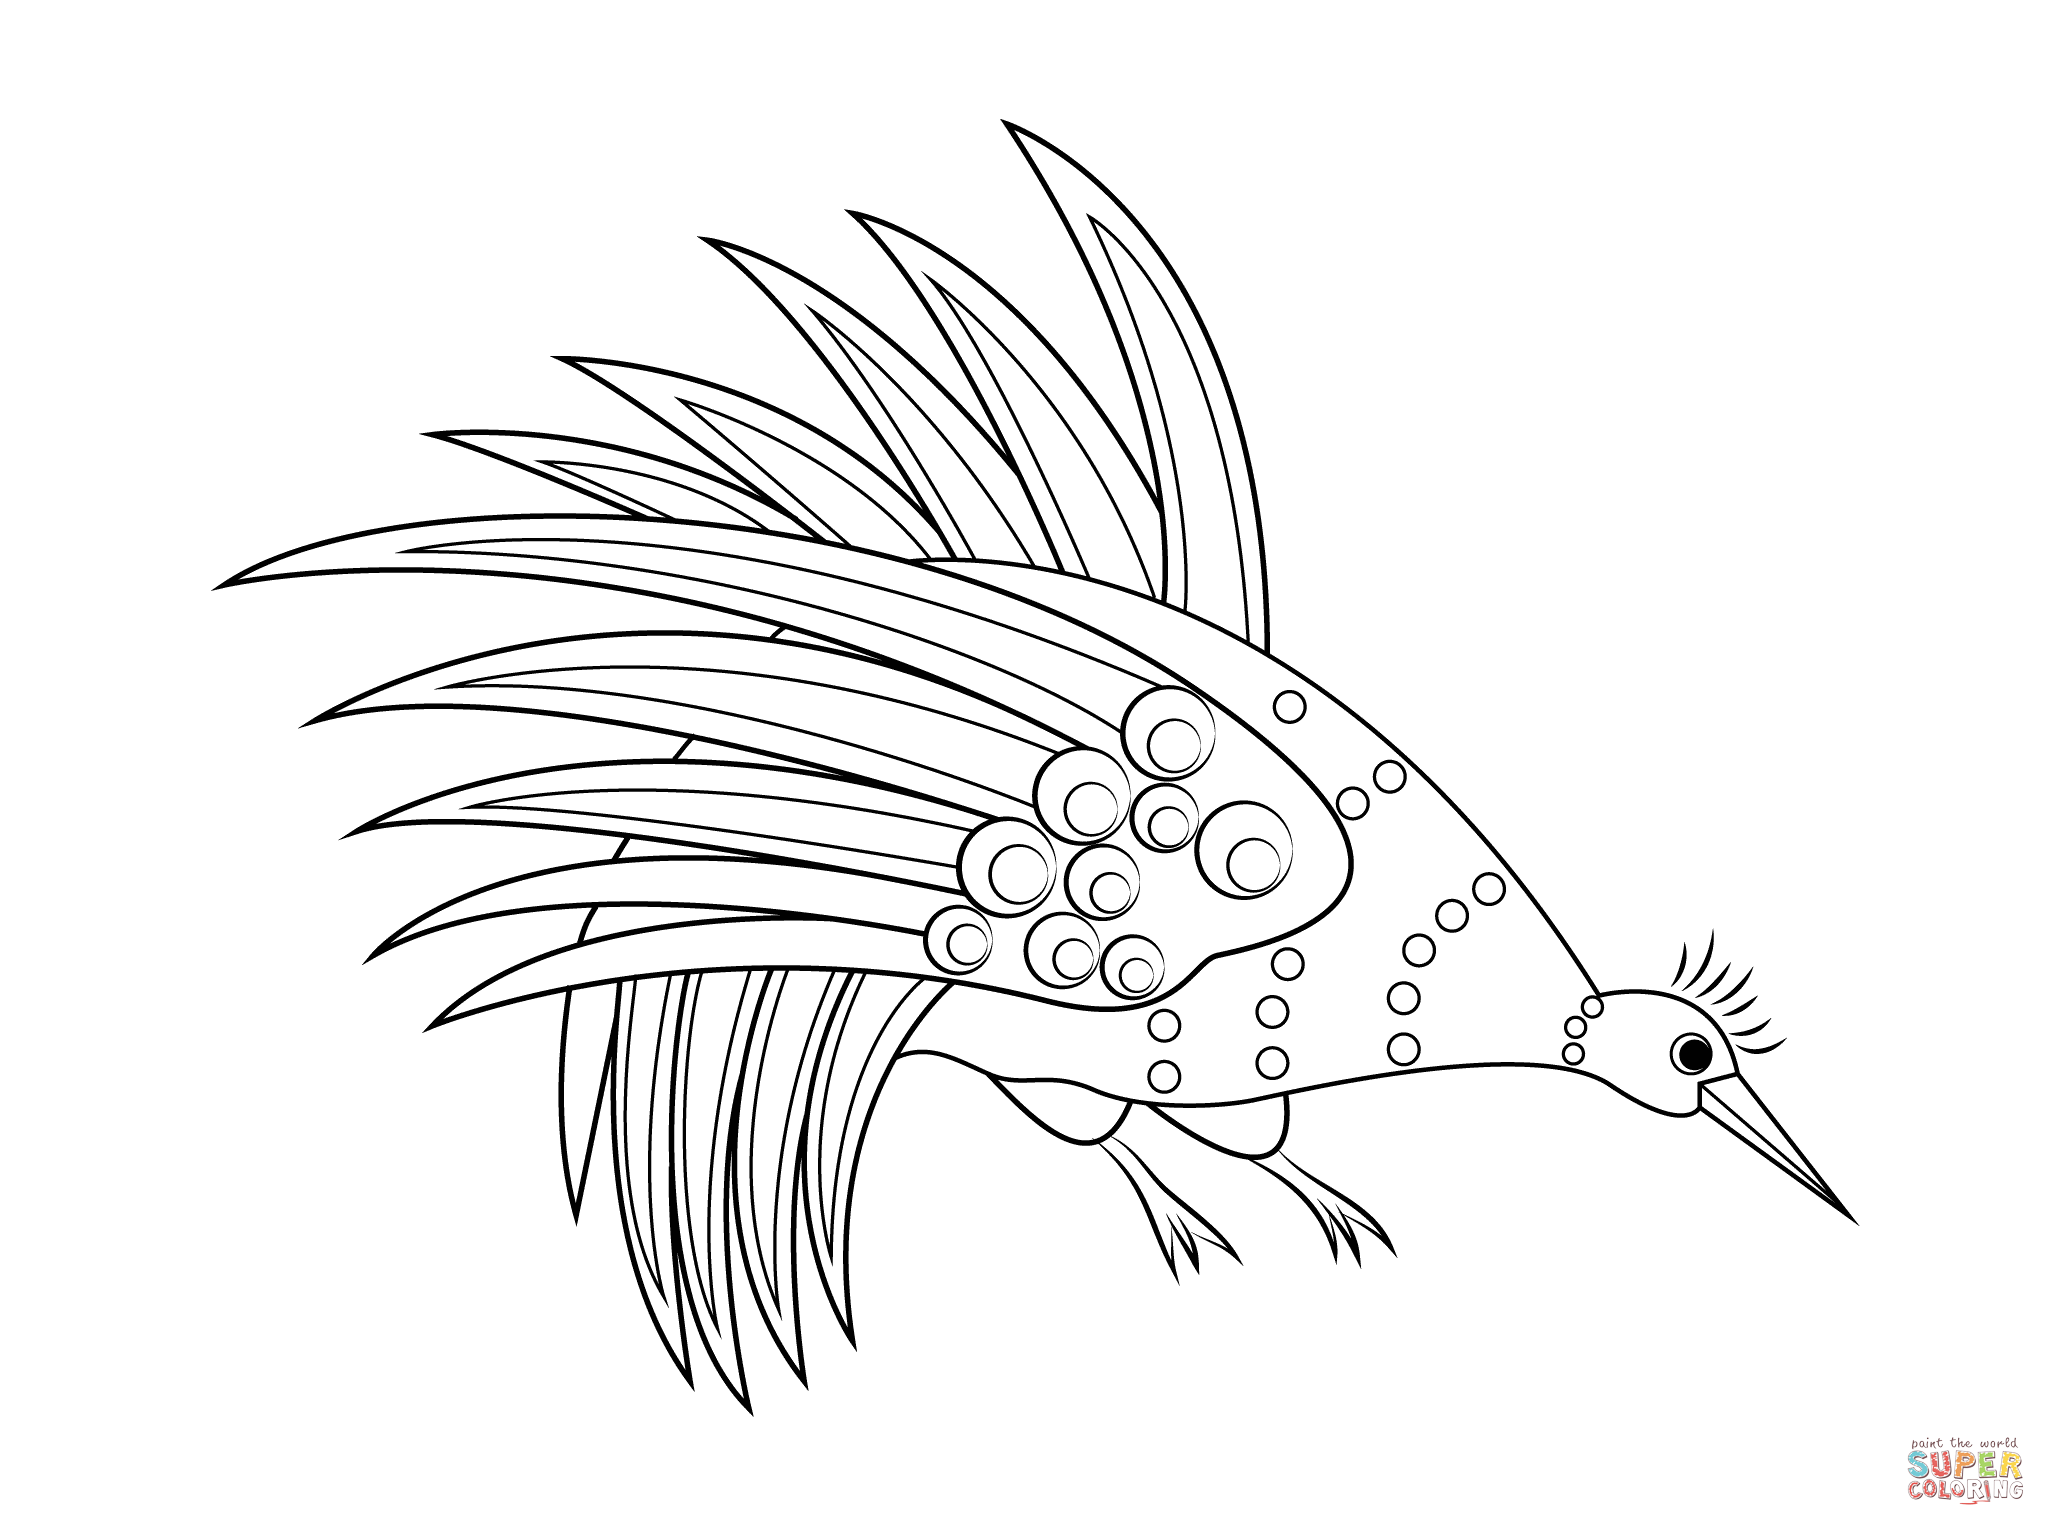 aboriginal drawing at getdrawings com free for personal use